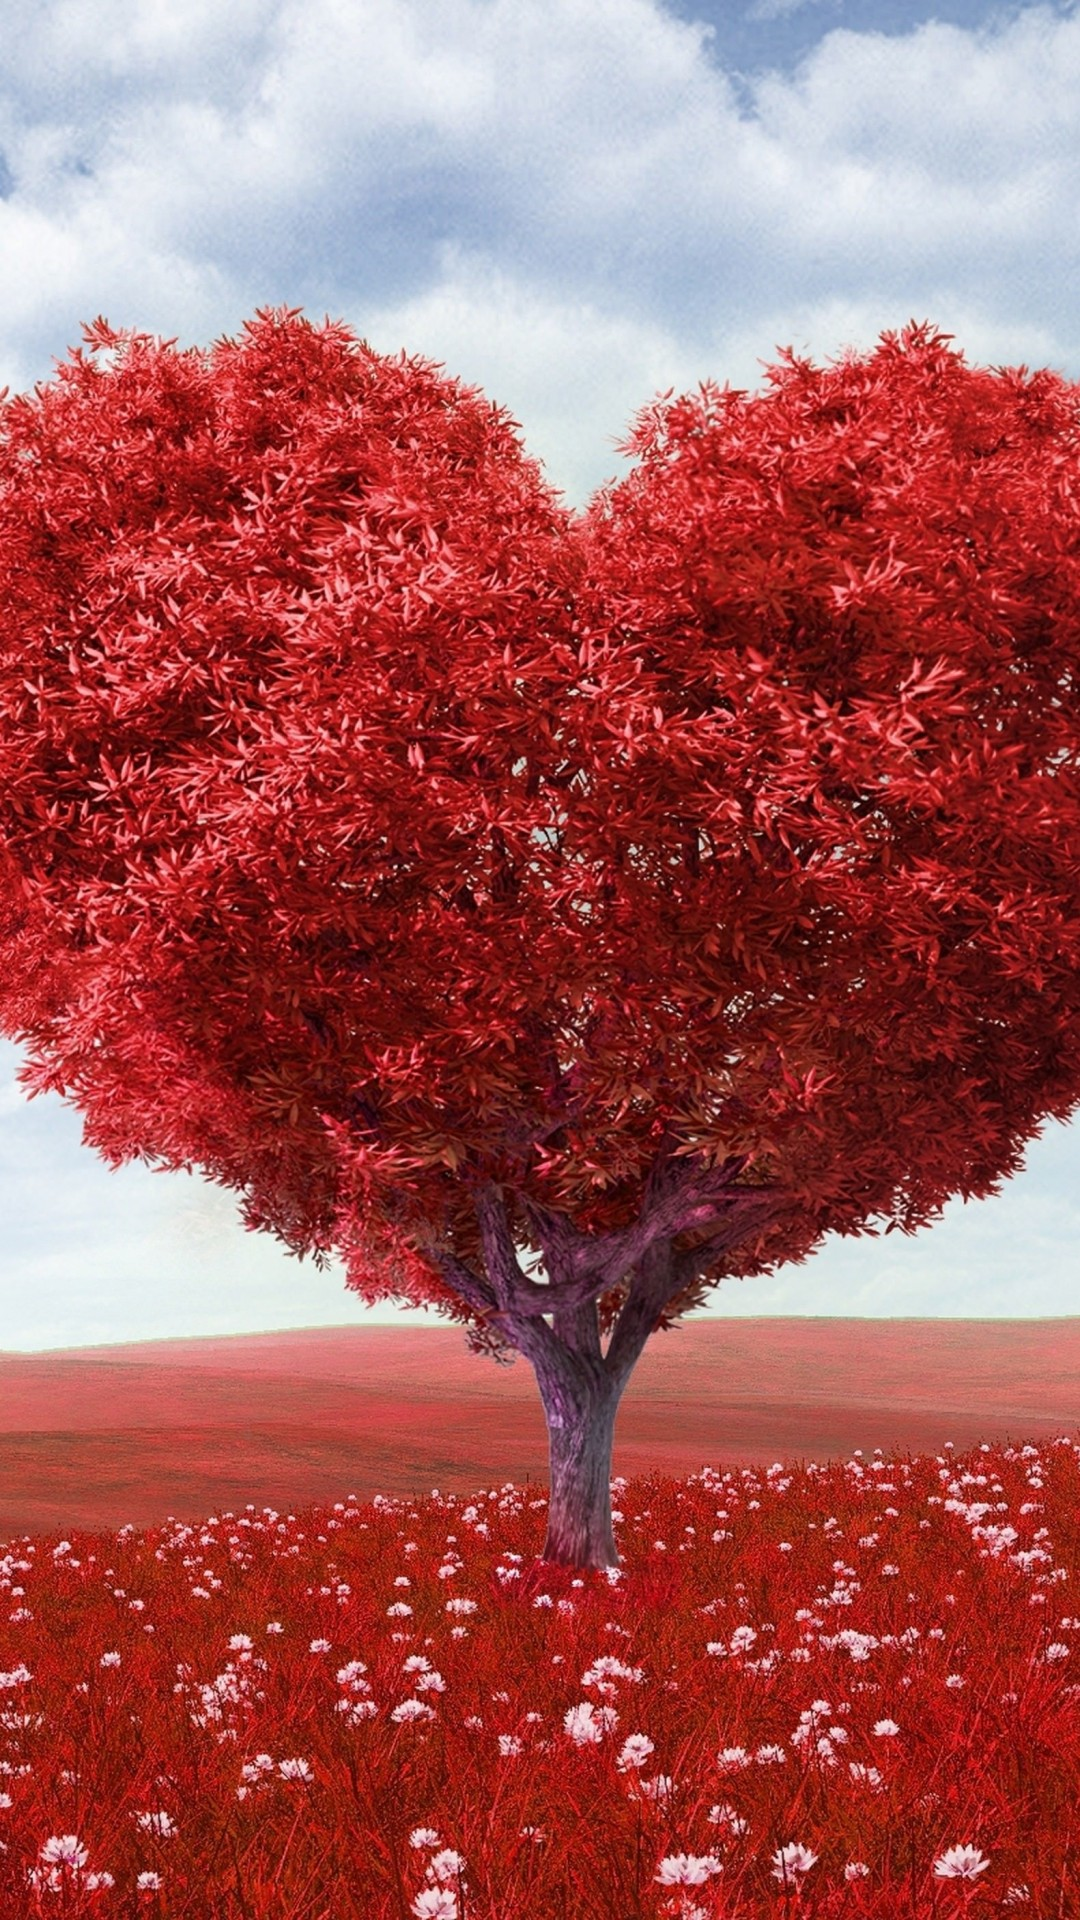 The Tree Of Love Wallpaper for SONY Xperia Z3